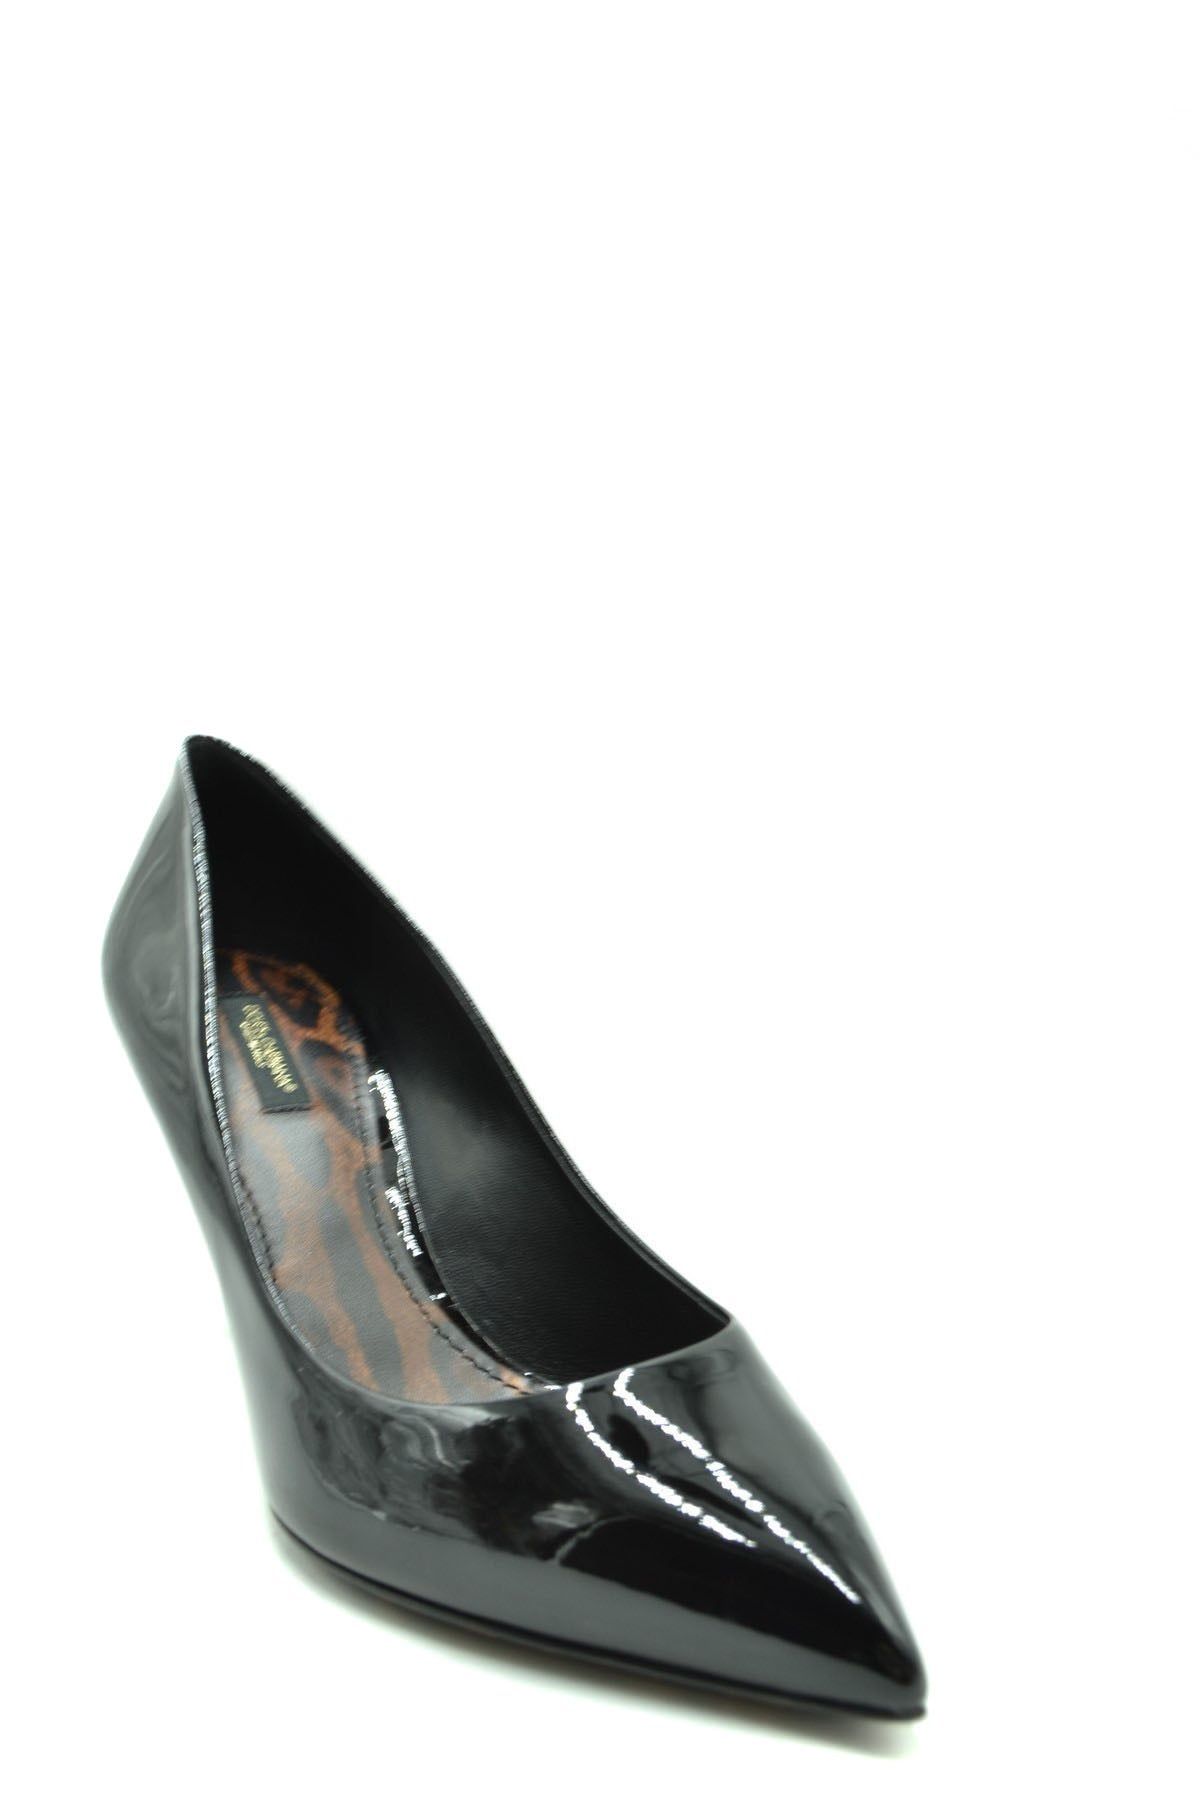 Shoes Dolce & Gabbana--Product Details Terms: New With LabelMain Color: BlackType Of Accessory: ShoesSeason: Fall / WinterMade In: ItalyGender: WomanHeel'S Height: 8Size: EuComposition: Leather 100%Year: 2020Manufacturer Part Number: Cd0685 Ac062 80999-Keyomi-Sook